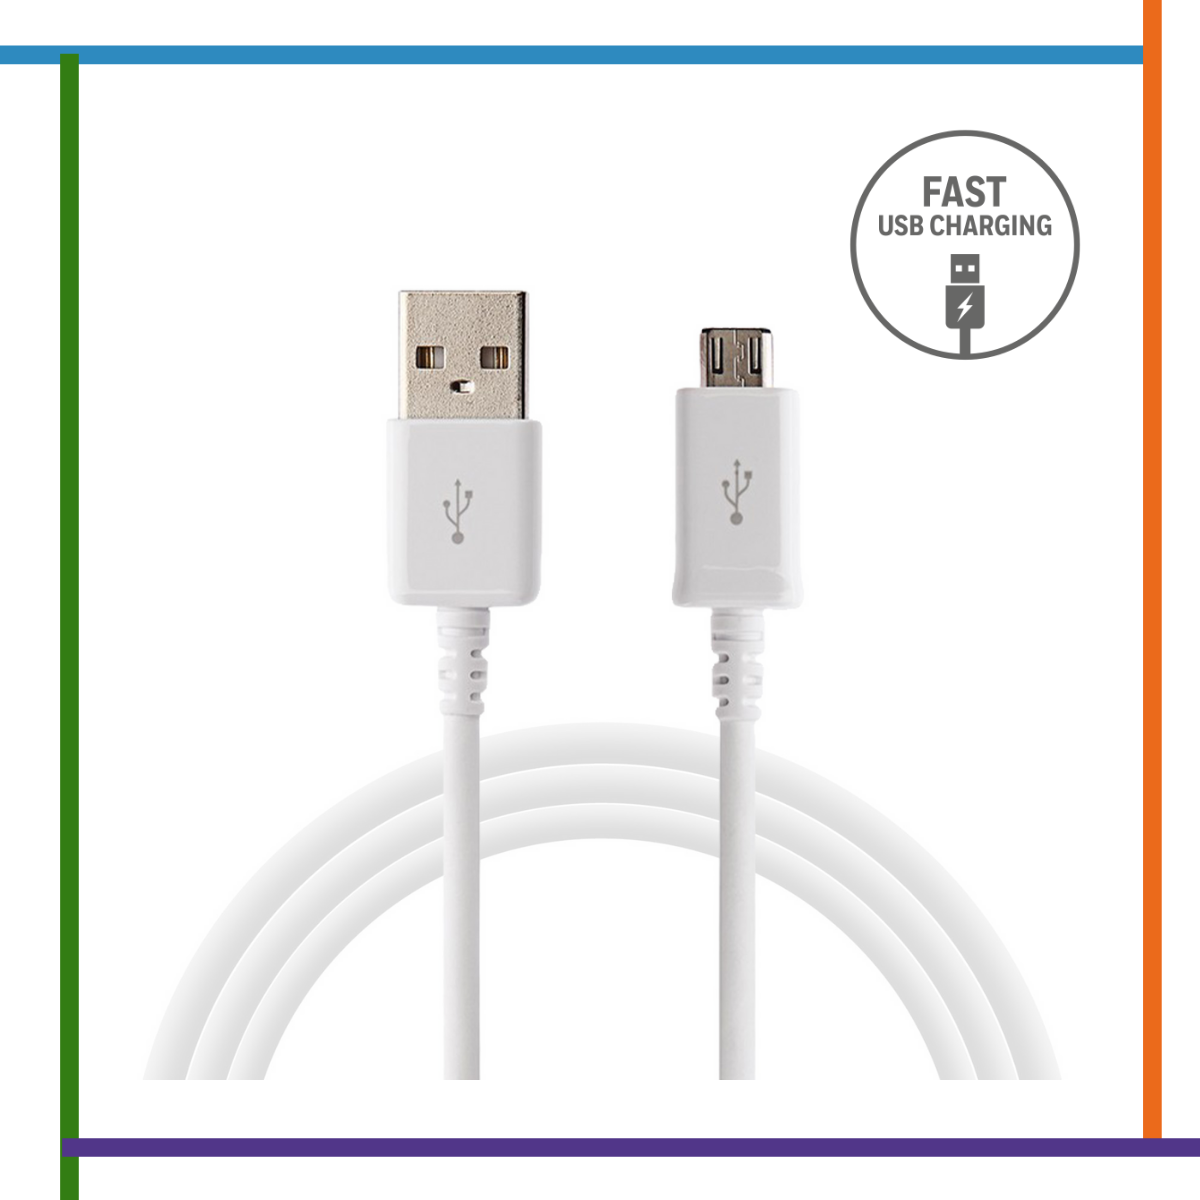 cable samsung blanco v8 fast charger